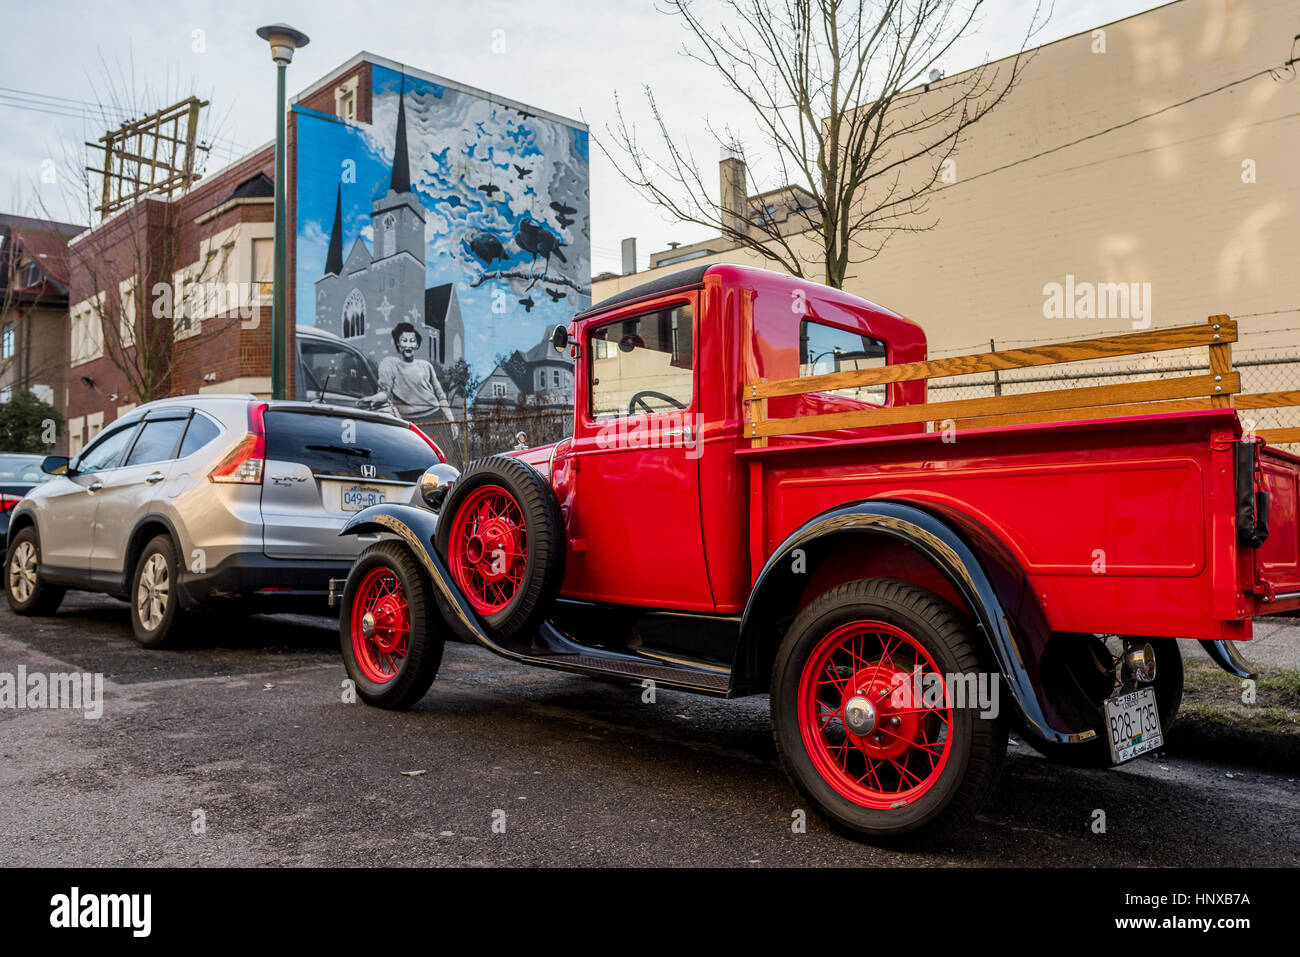 Old Restored Model Ford Truck Stock Photos & Old Restored Model Ford ...